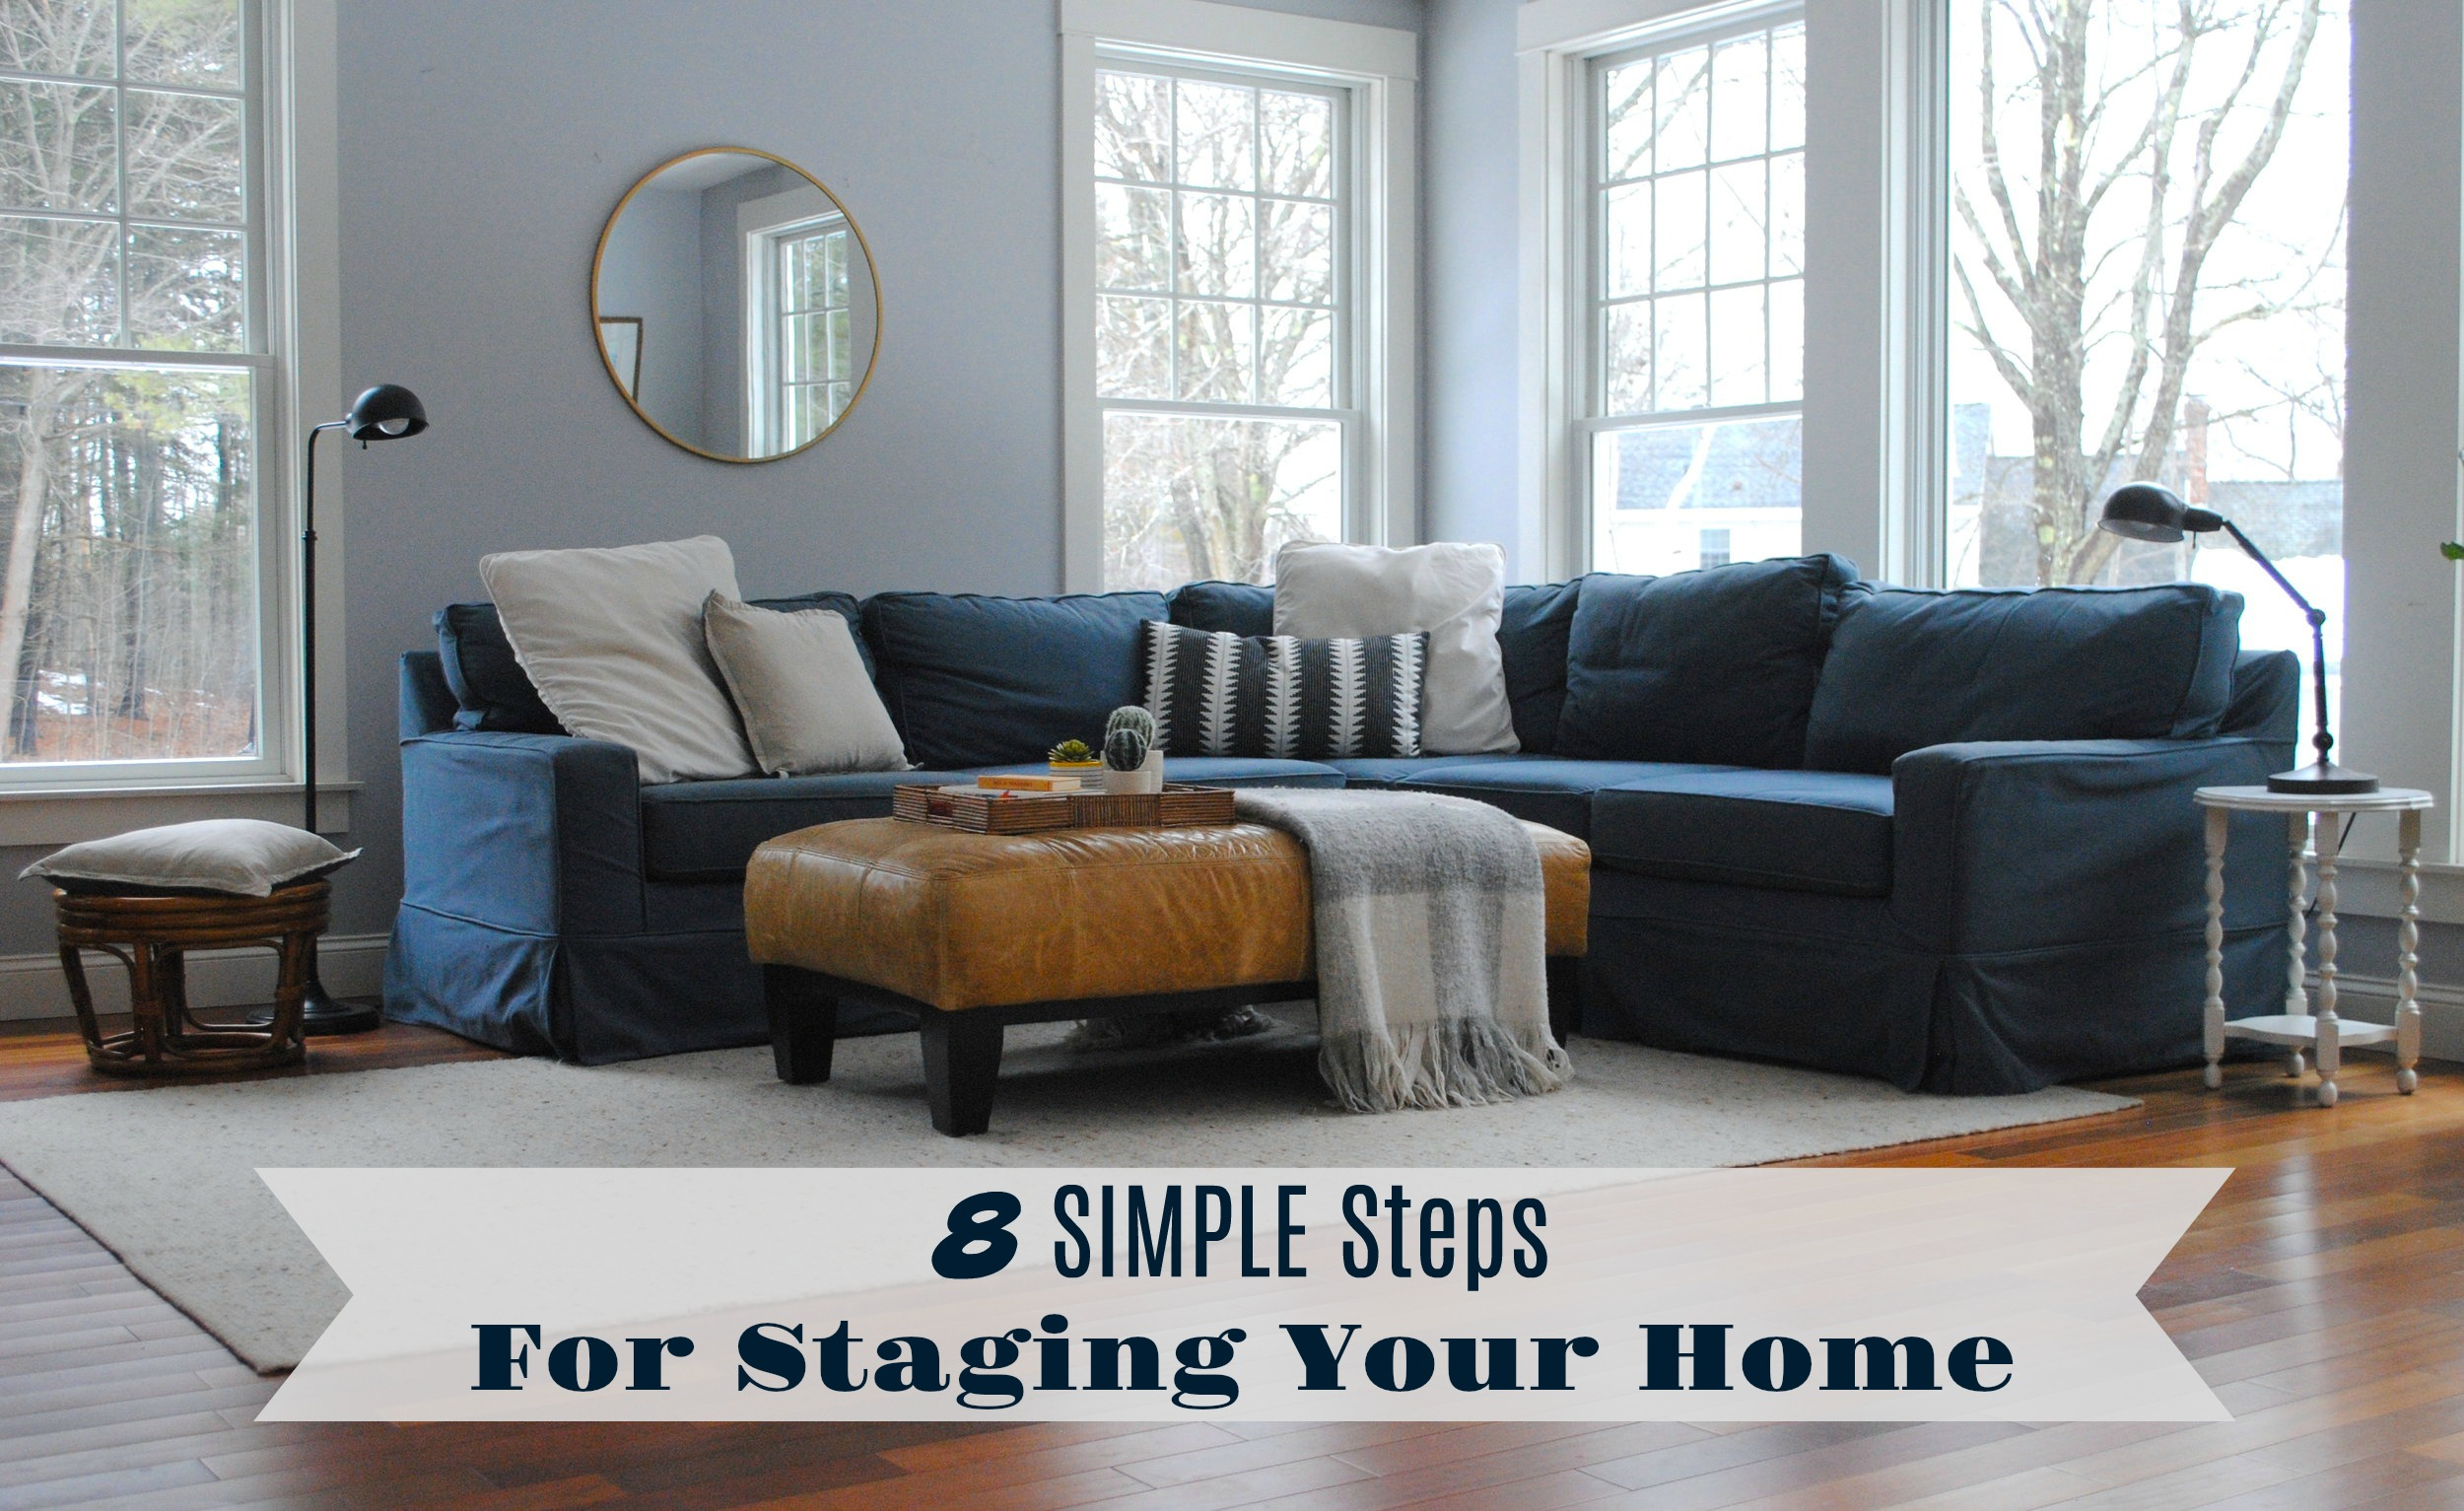 8 Simple Staging Steps for Staging Your Home